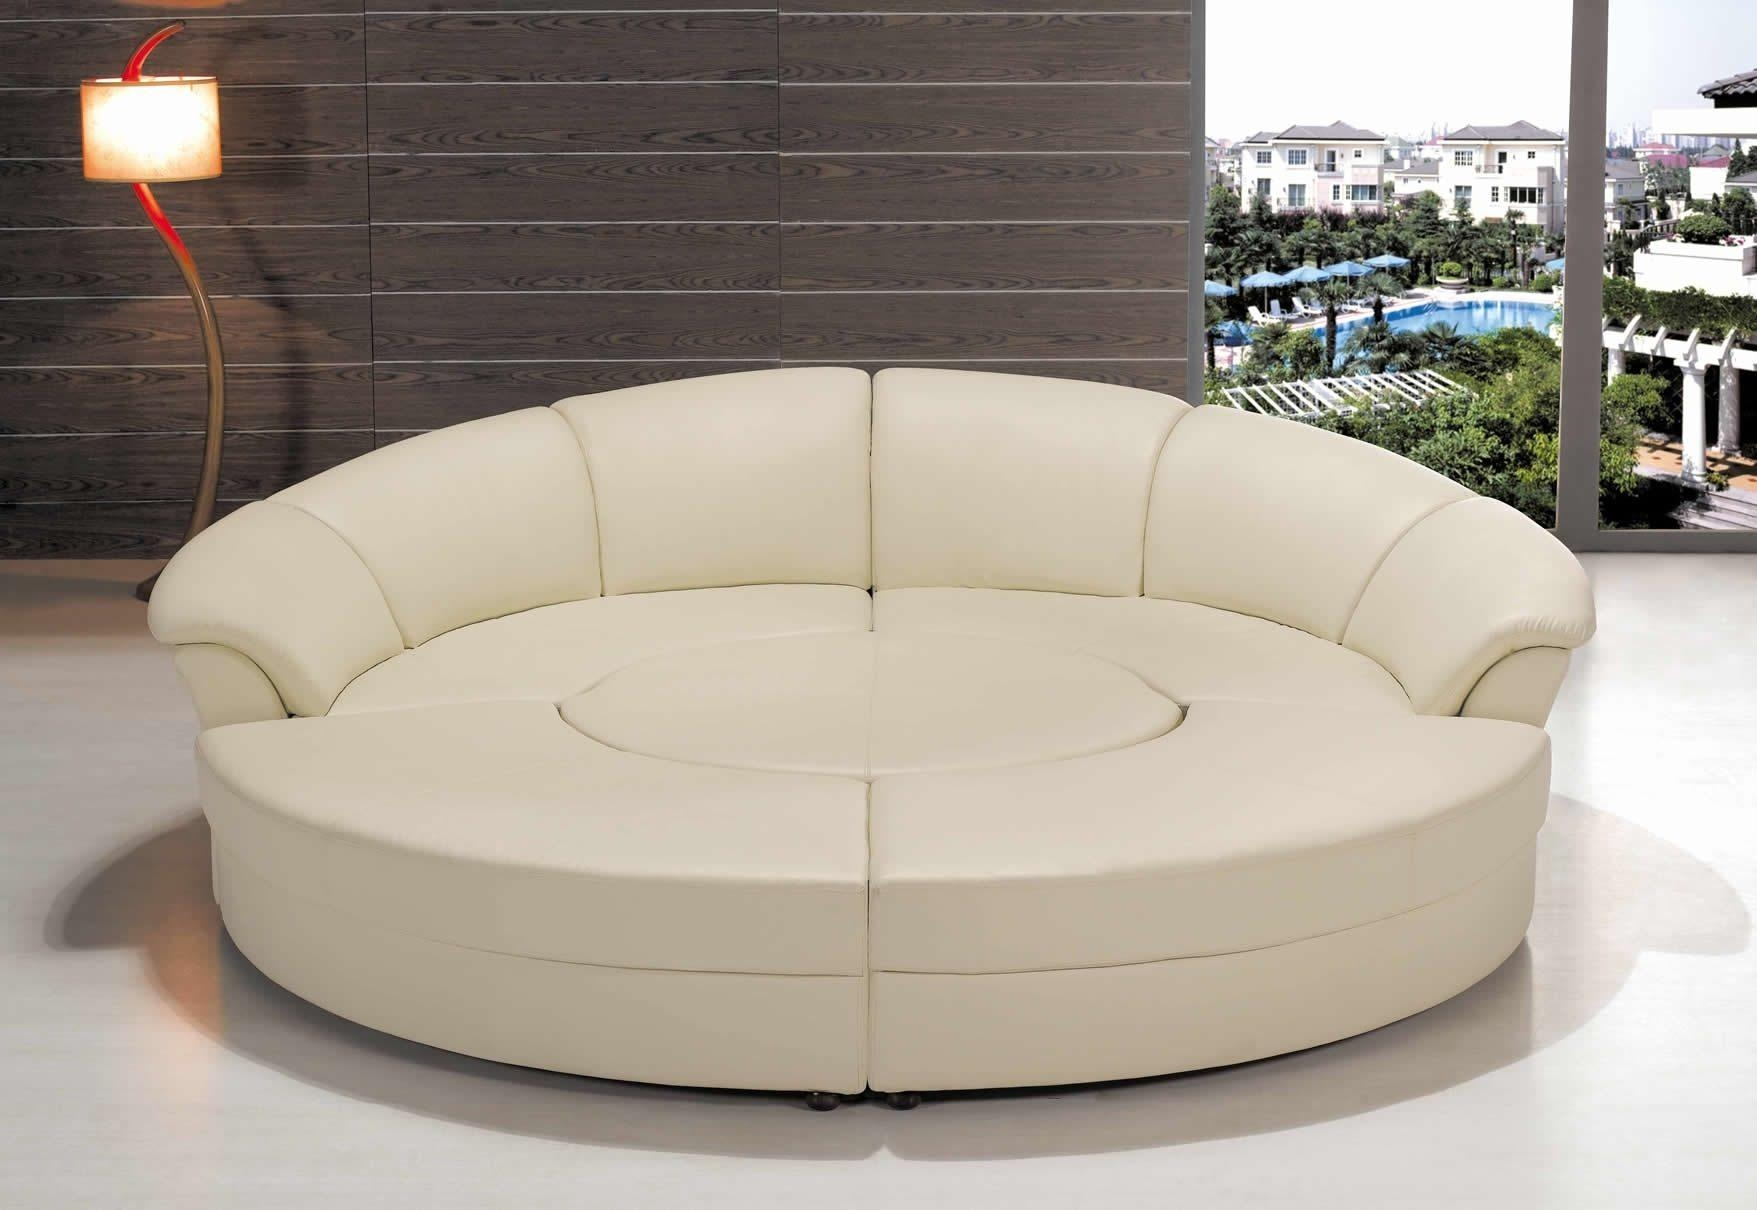 Circular Sofa Bed | Tehranmix Decoration For Round Sofas (Image 3 of 20)